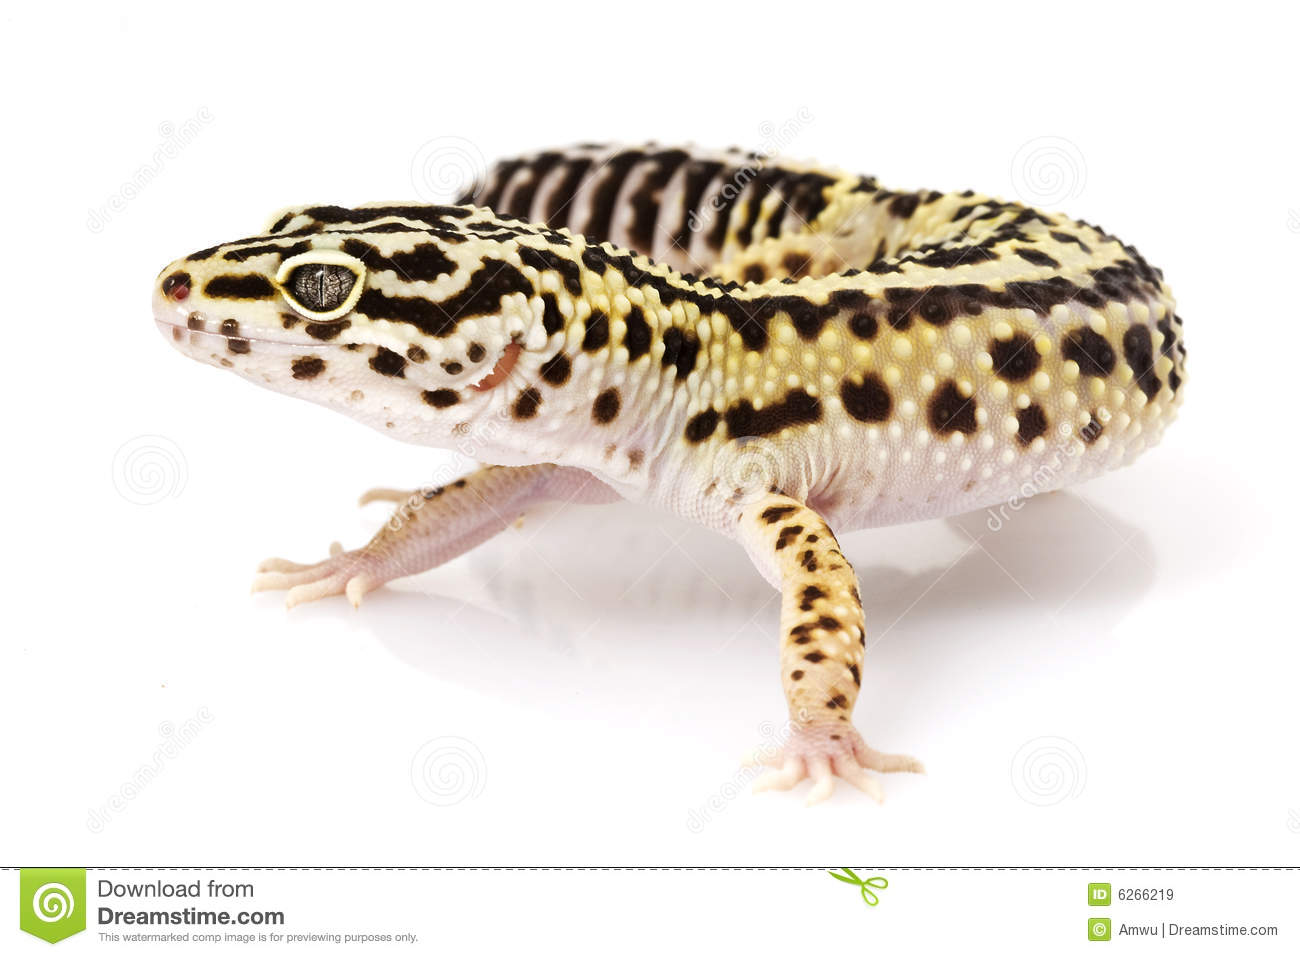 Leopard Gecko clipart #11, Download drawings